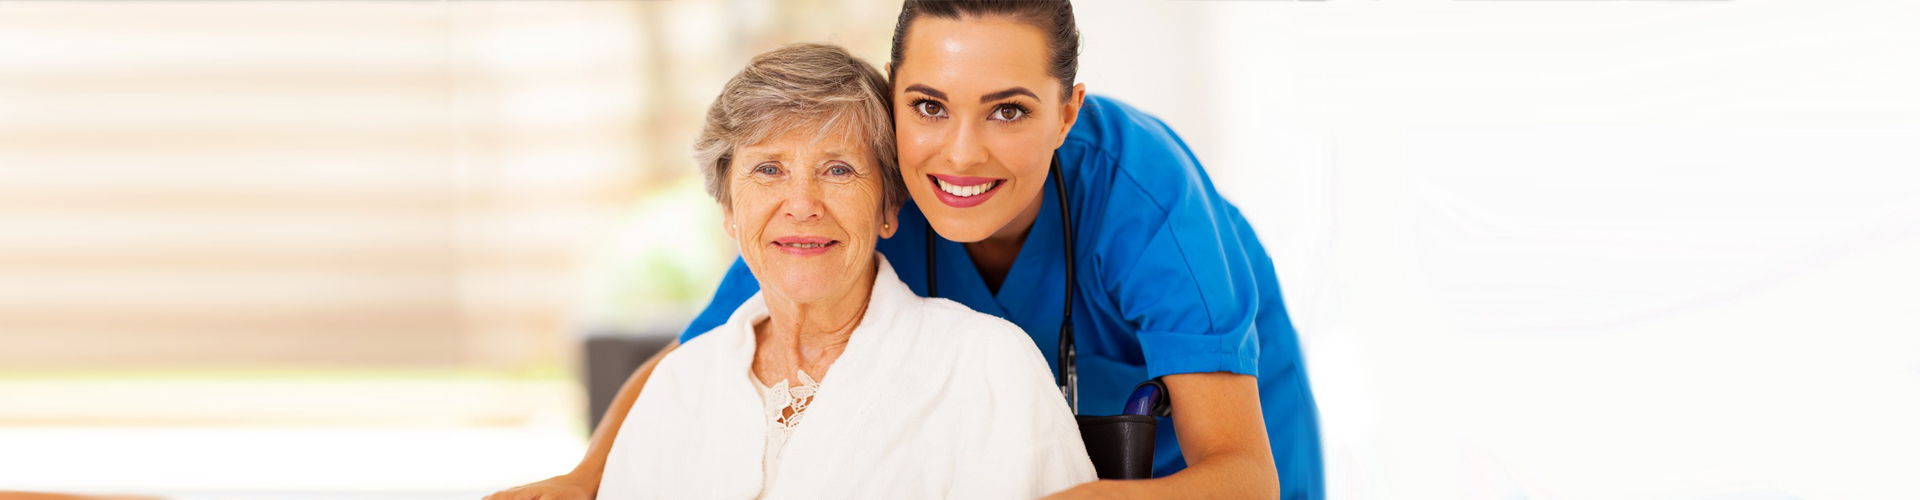 a nurse and a senior woman smiling